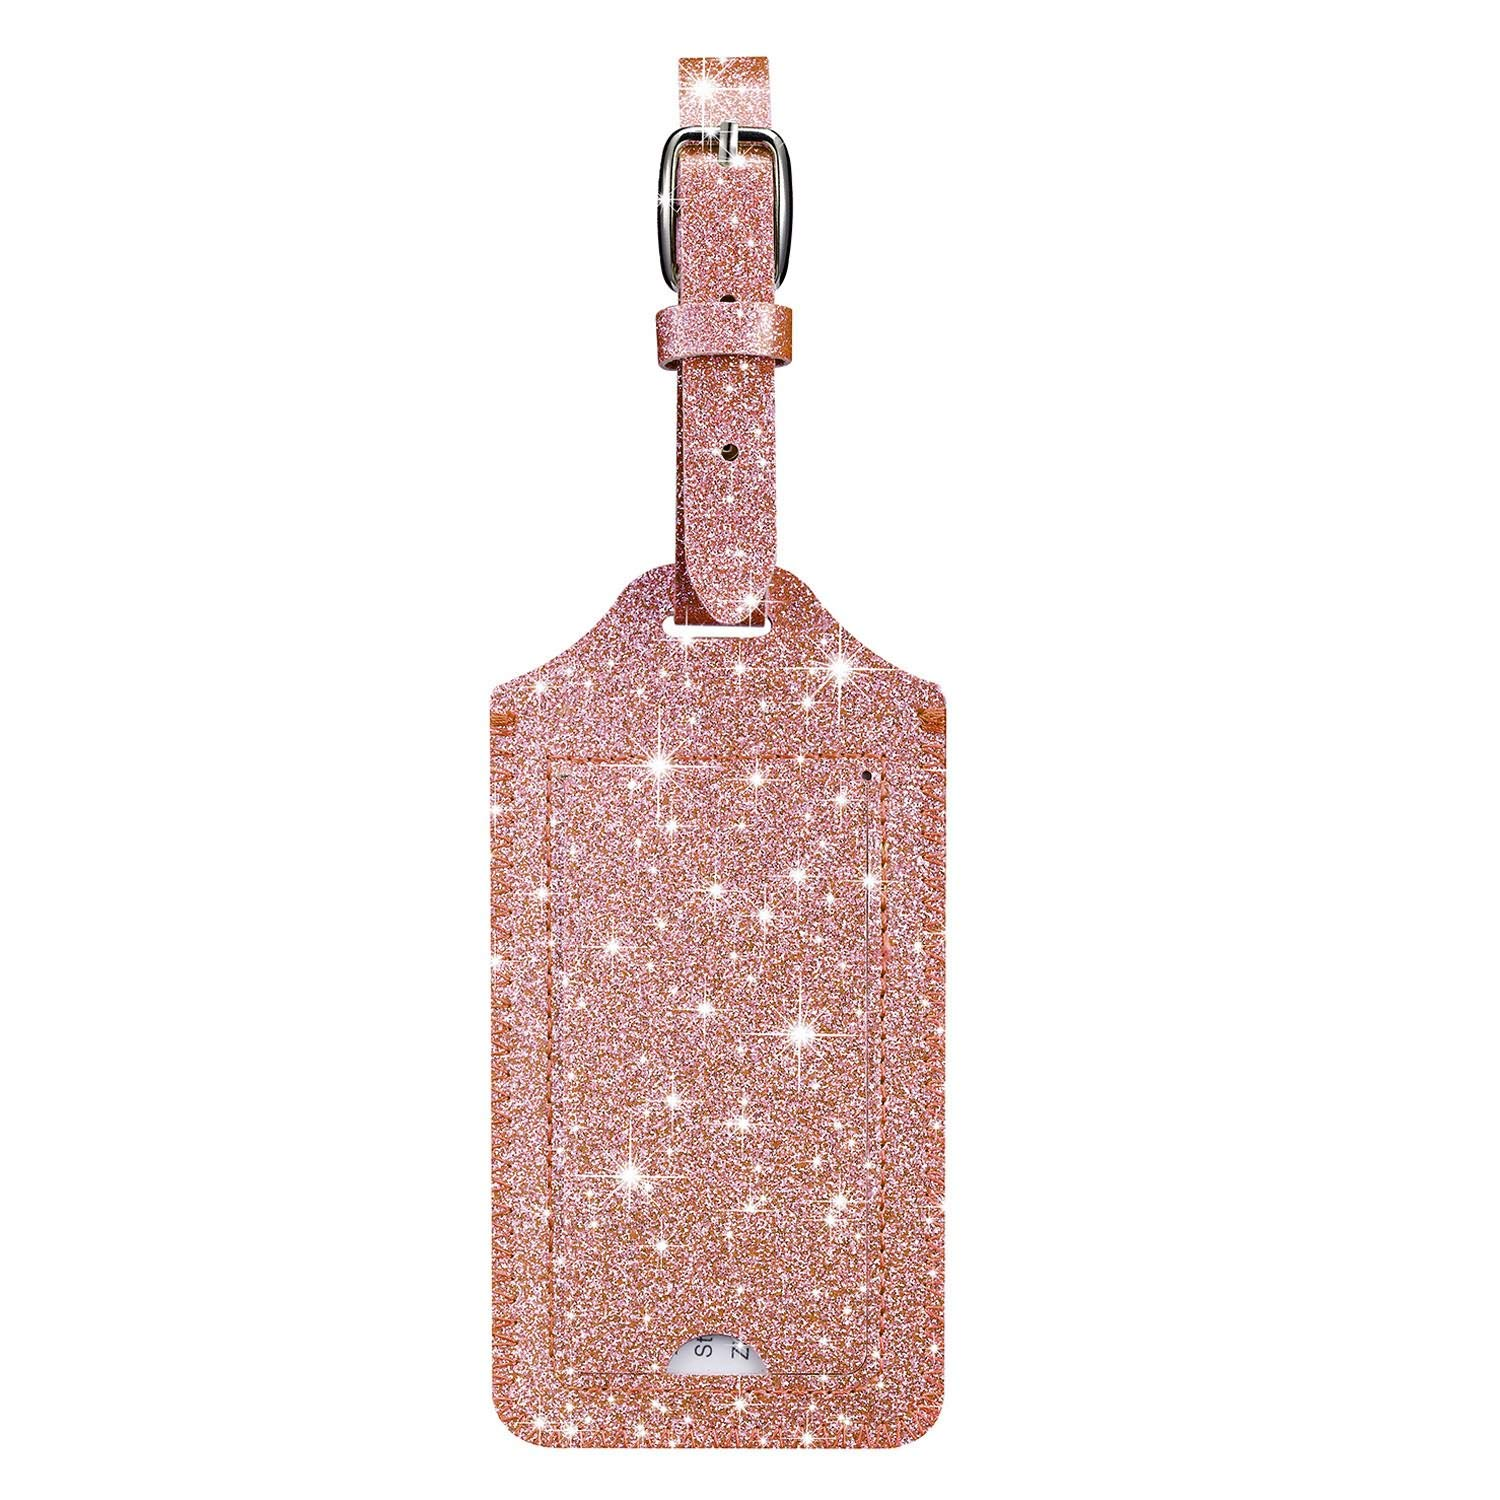 2 Pack Rose Gold HOTCOOL Leather Luggage Tags Travel Bag Tags Luggage Tags